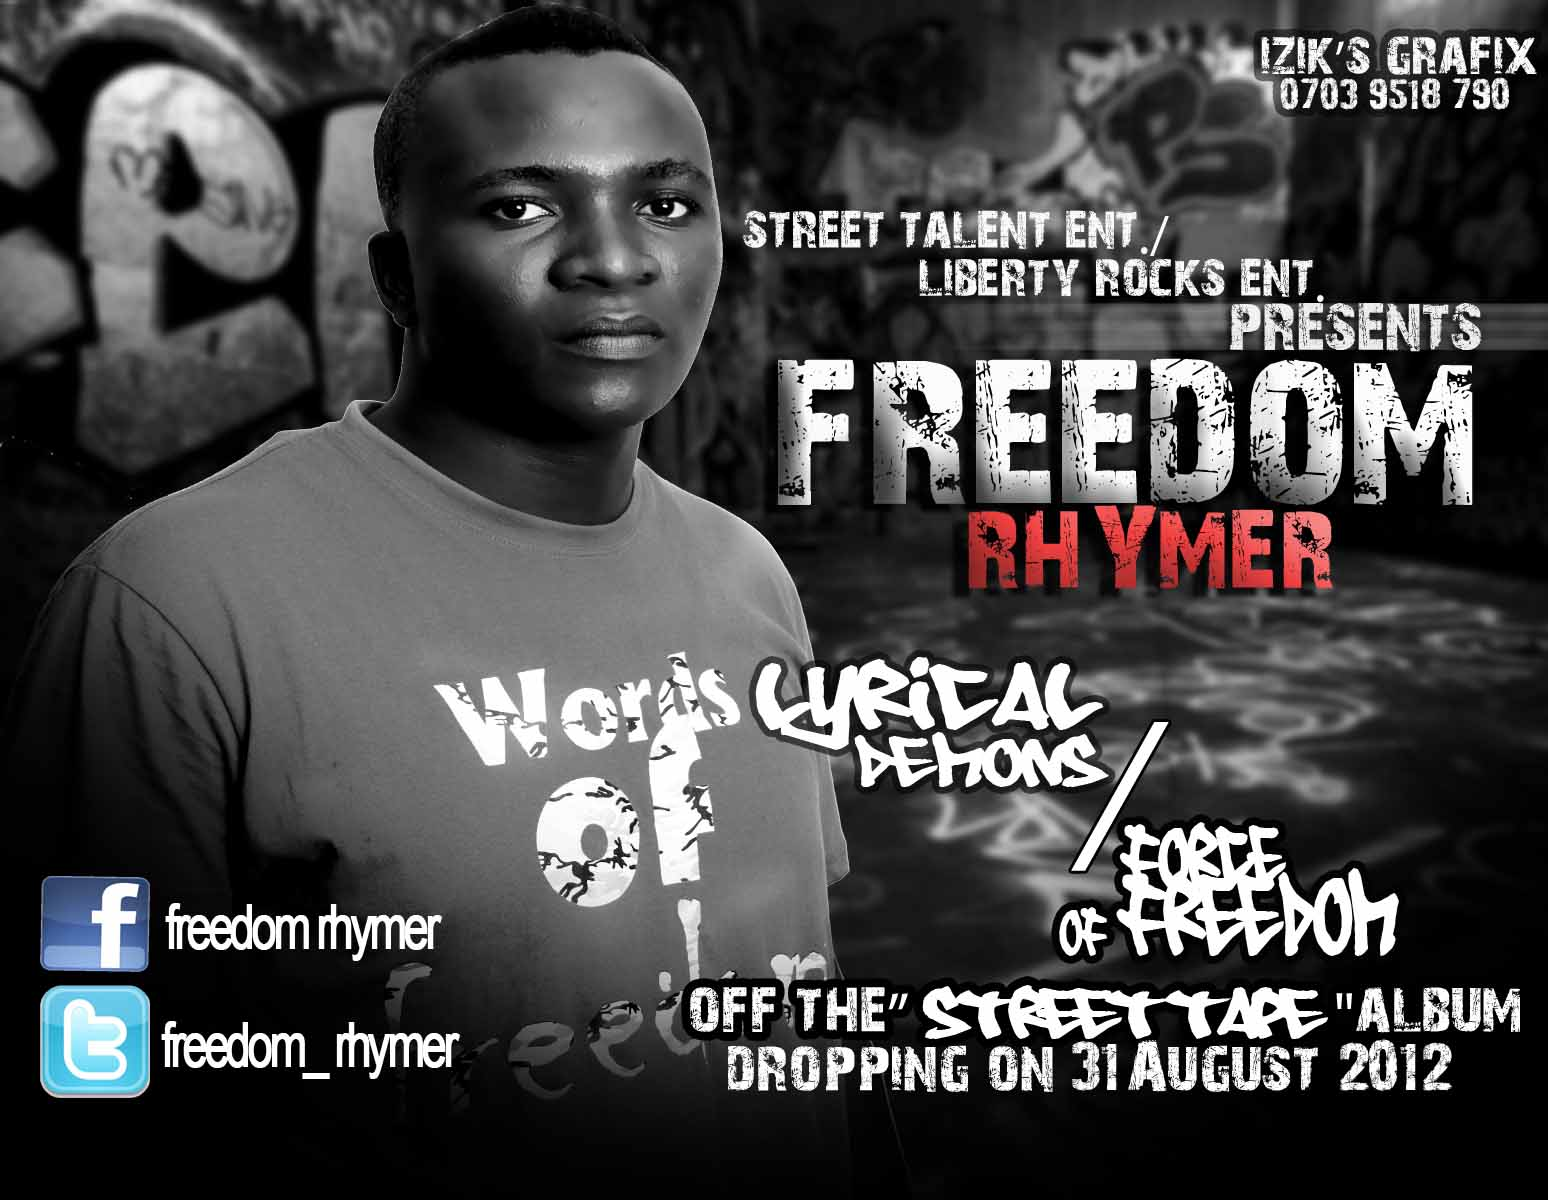 Freedom Rhymer - LYRICAL DEMONS + FORCE OF FREEDOM Artwork | AceWorldTeam.com